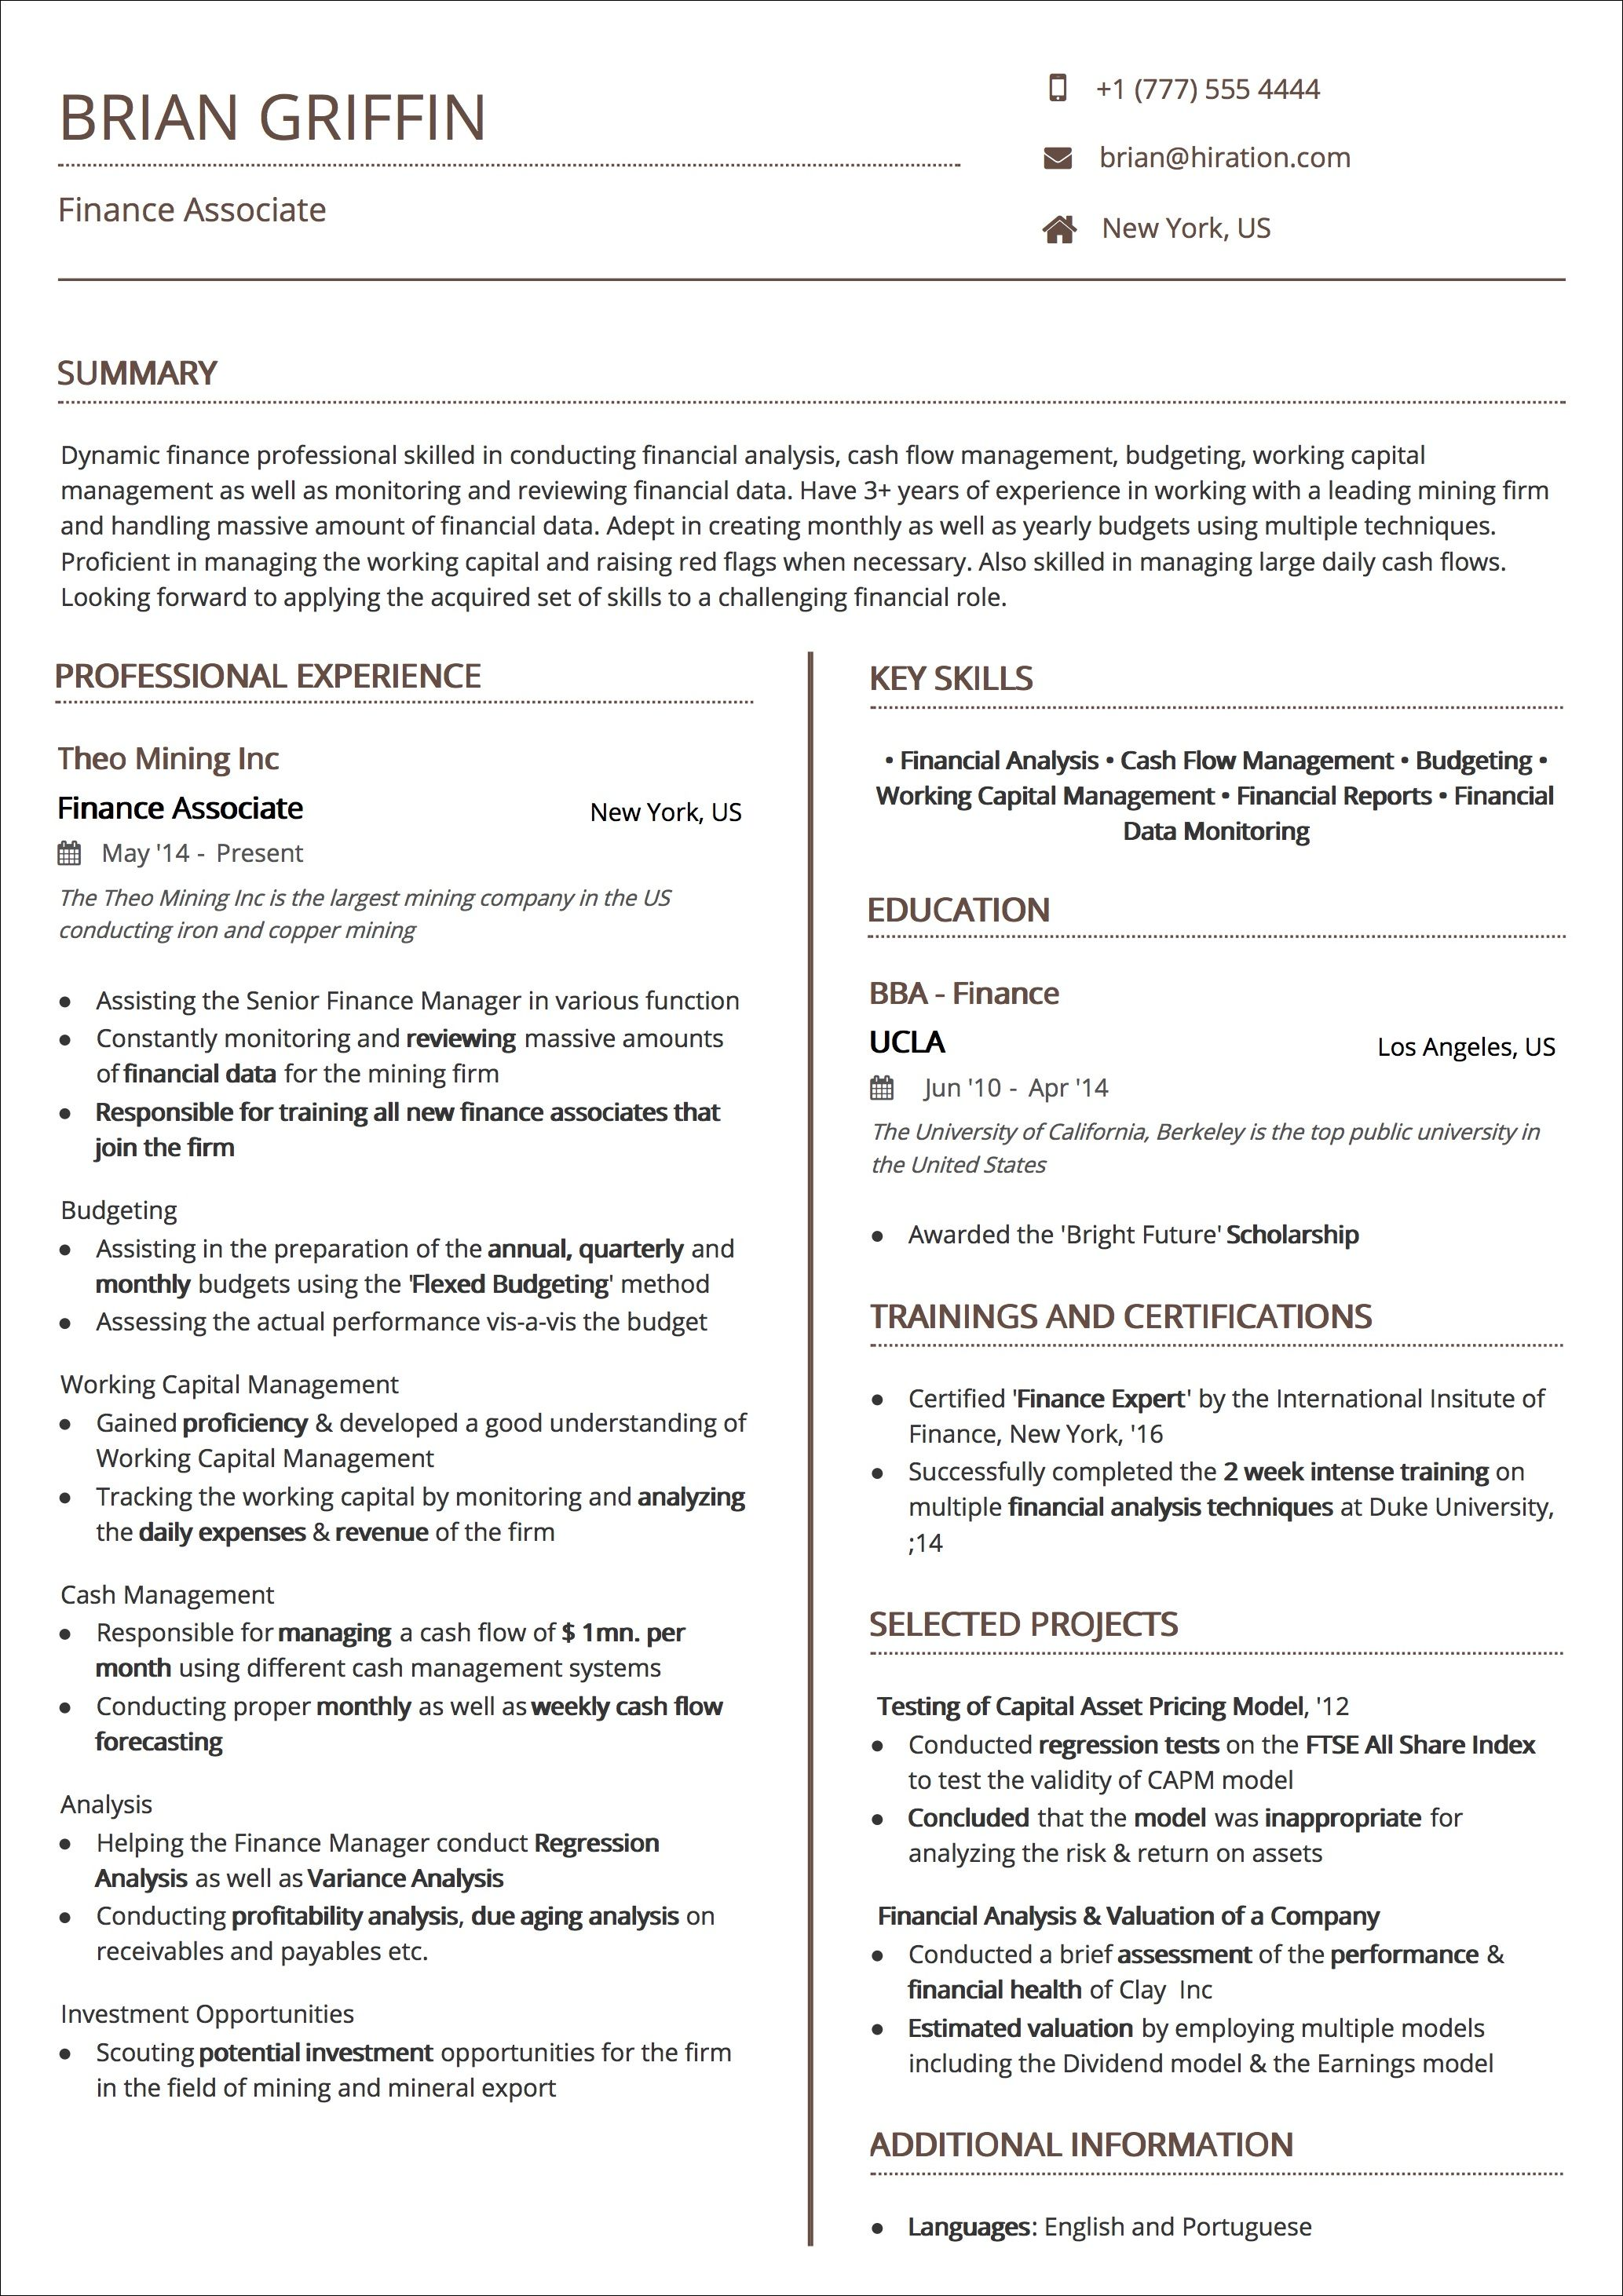 Resume Templates - The 2019 Guide to Choosing the Best